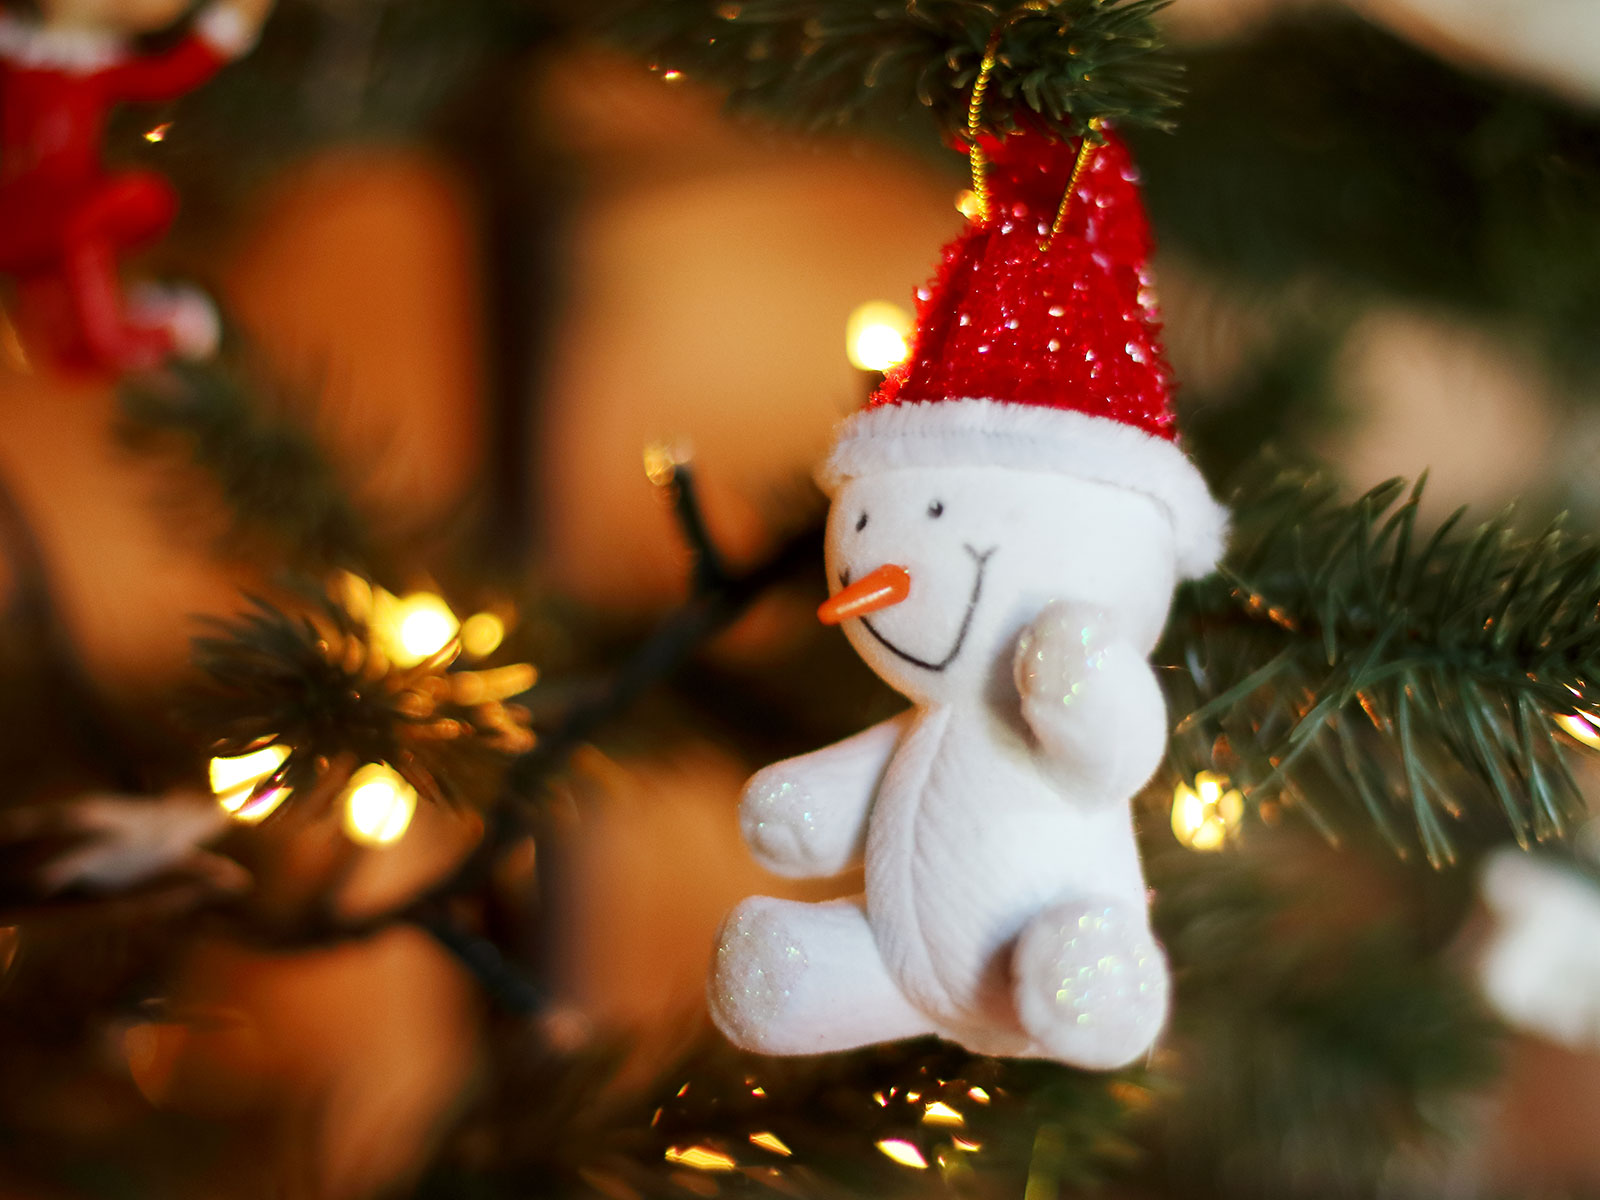 snowman ornament at holiday booth